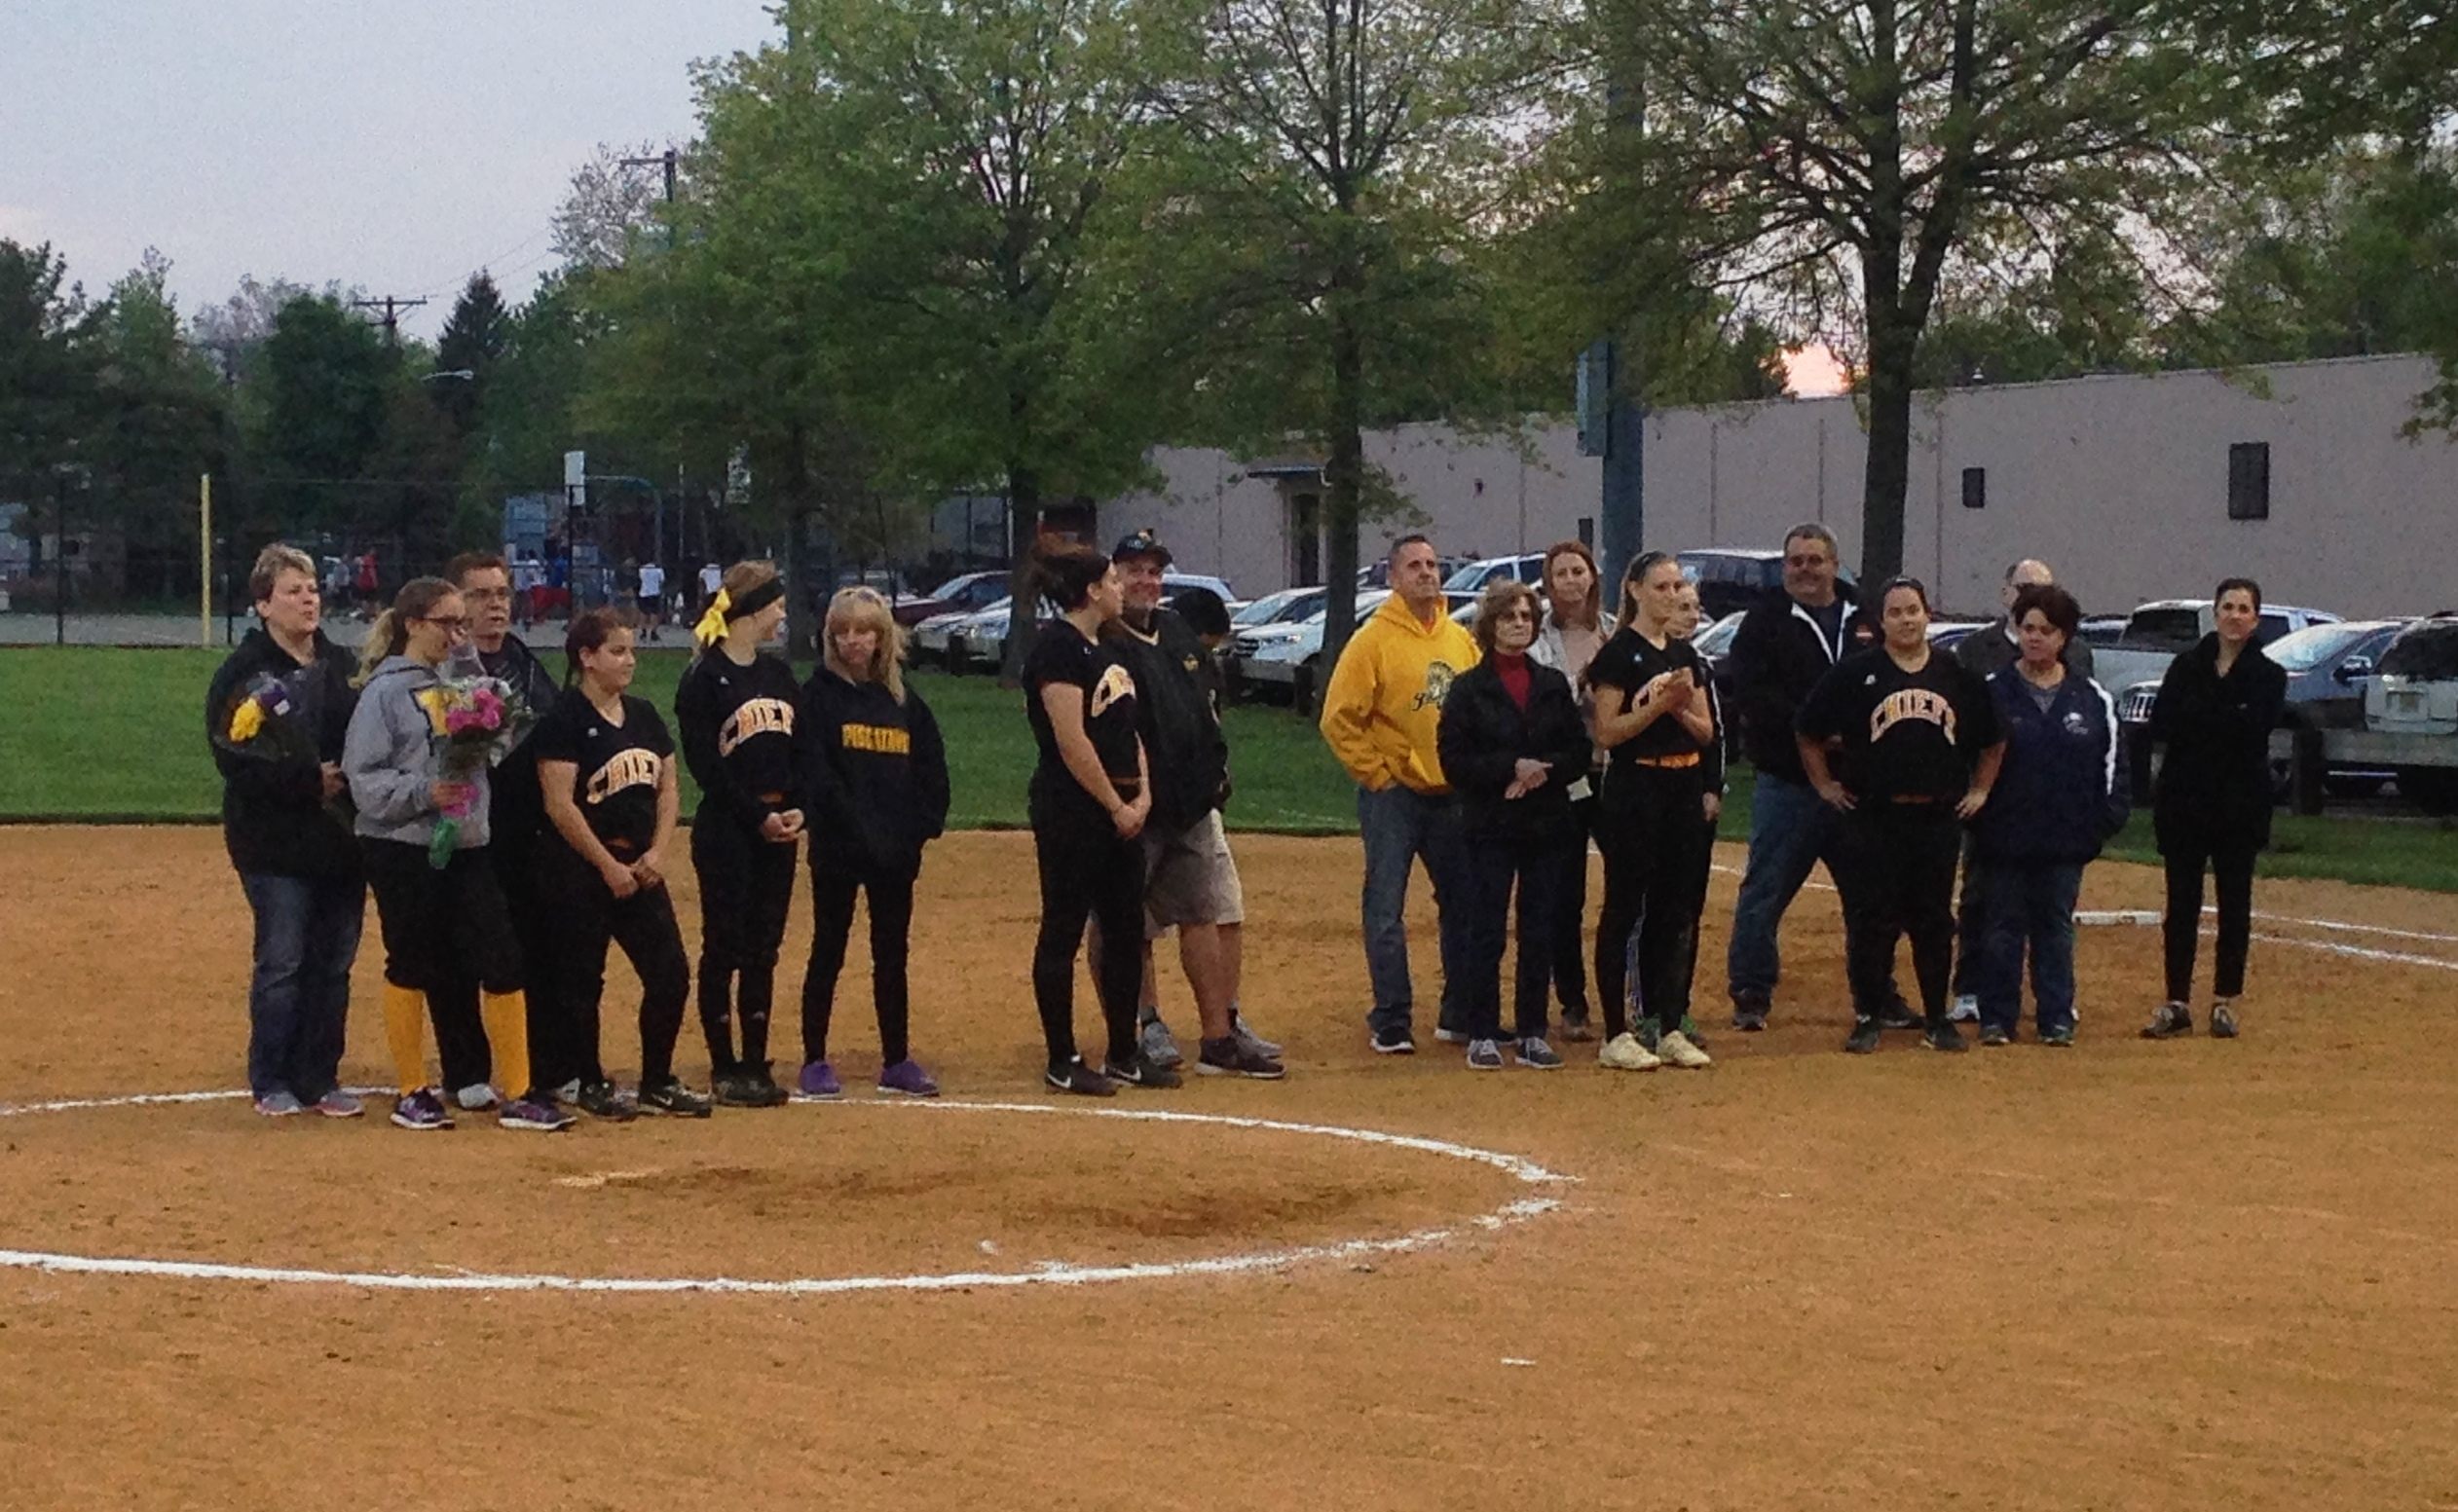 e5d72e9eda7d4bc22679_Softball_Senior_Night_vs_Elizabeth_5-9-16_013_cropped.jpg